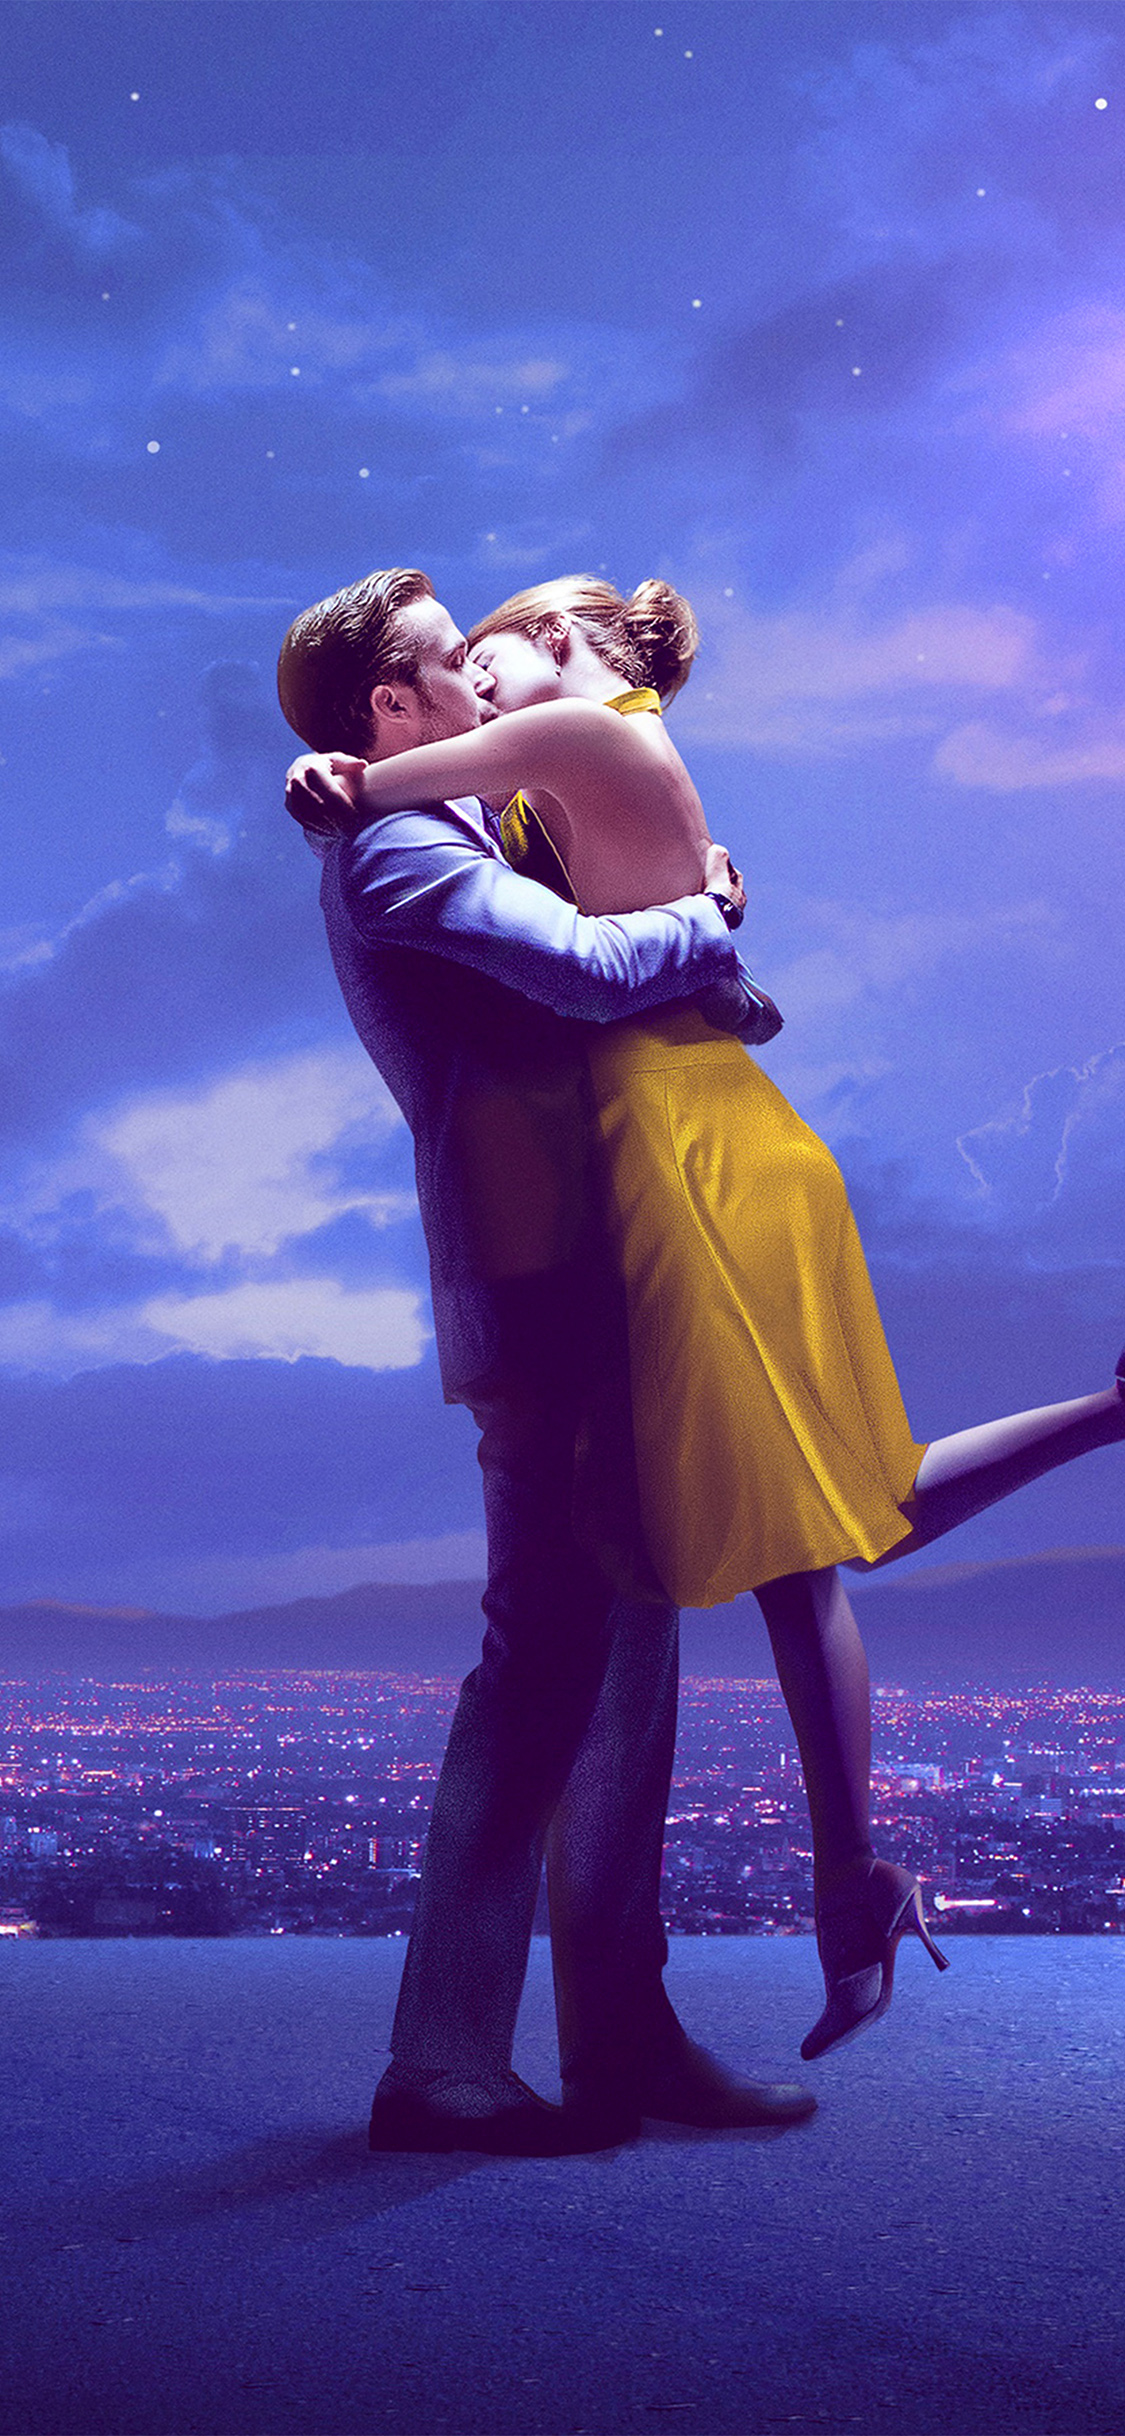 Av60 Lalaland Film Movie Purple Blue Poster Illustration Art